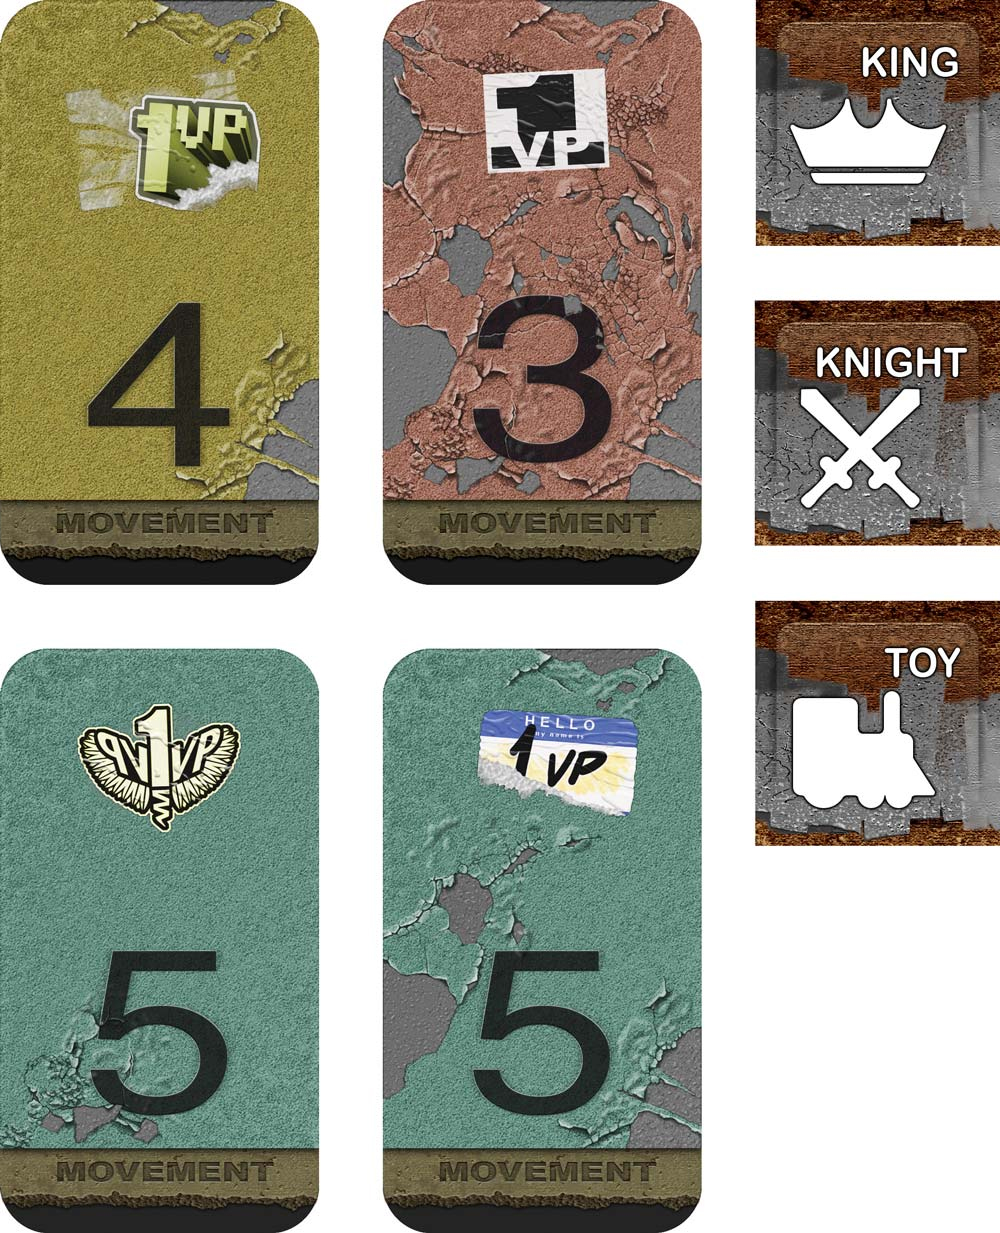 Movement cards and player tokens.